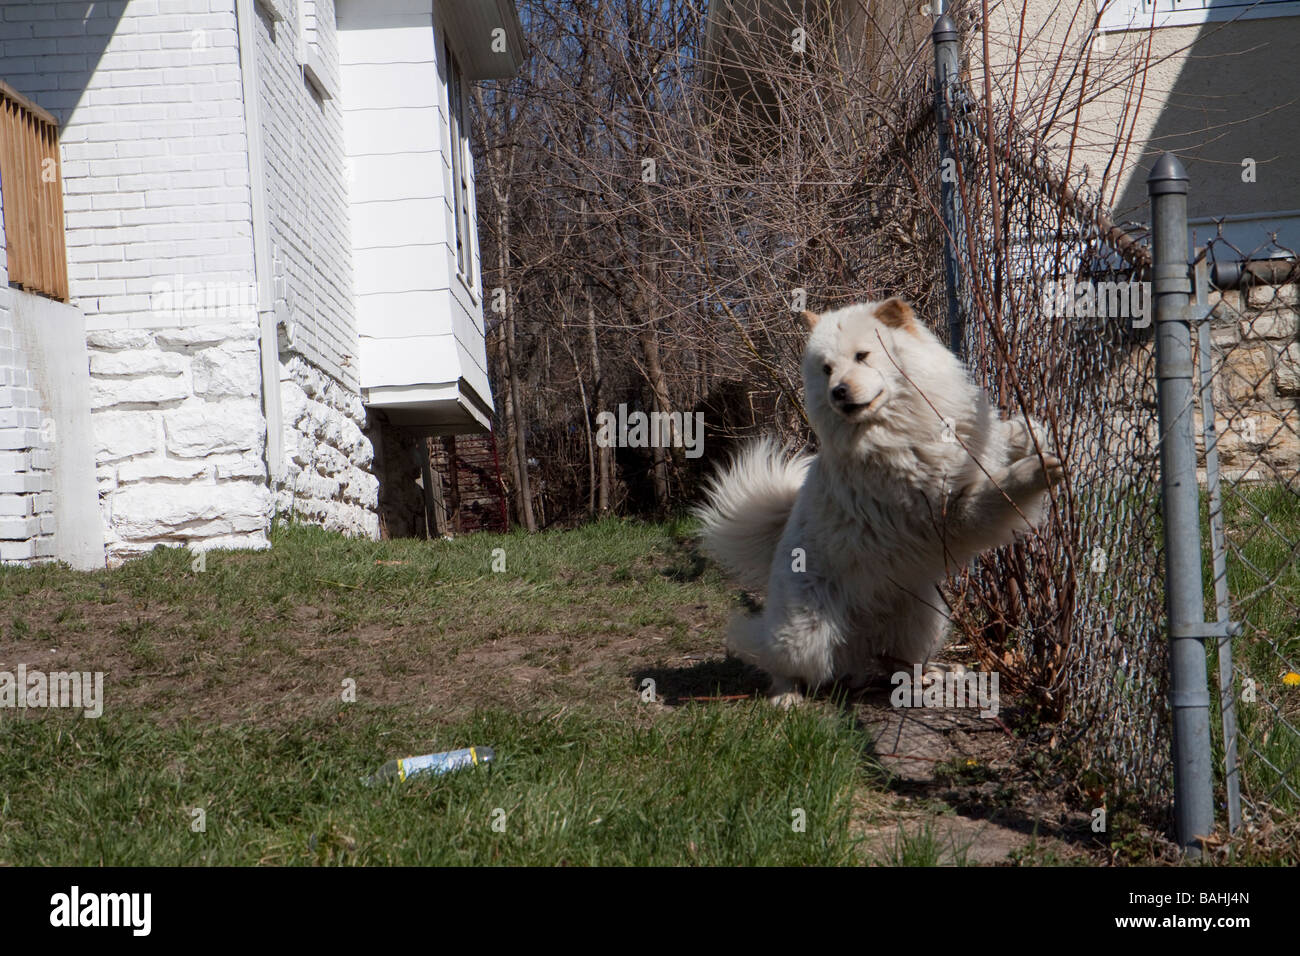 guard dog at heroin dealer's house - Stock Image